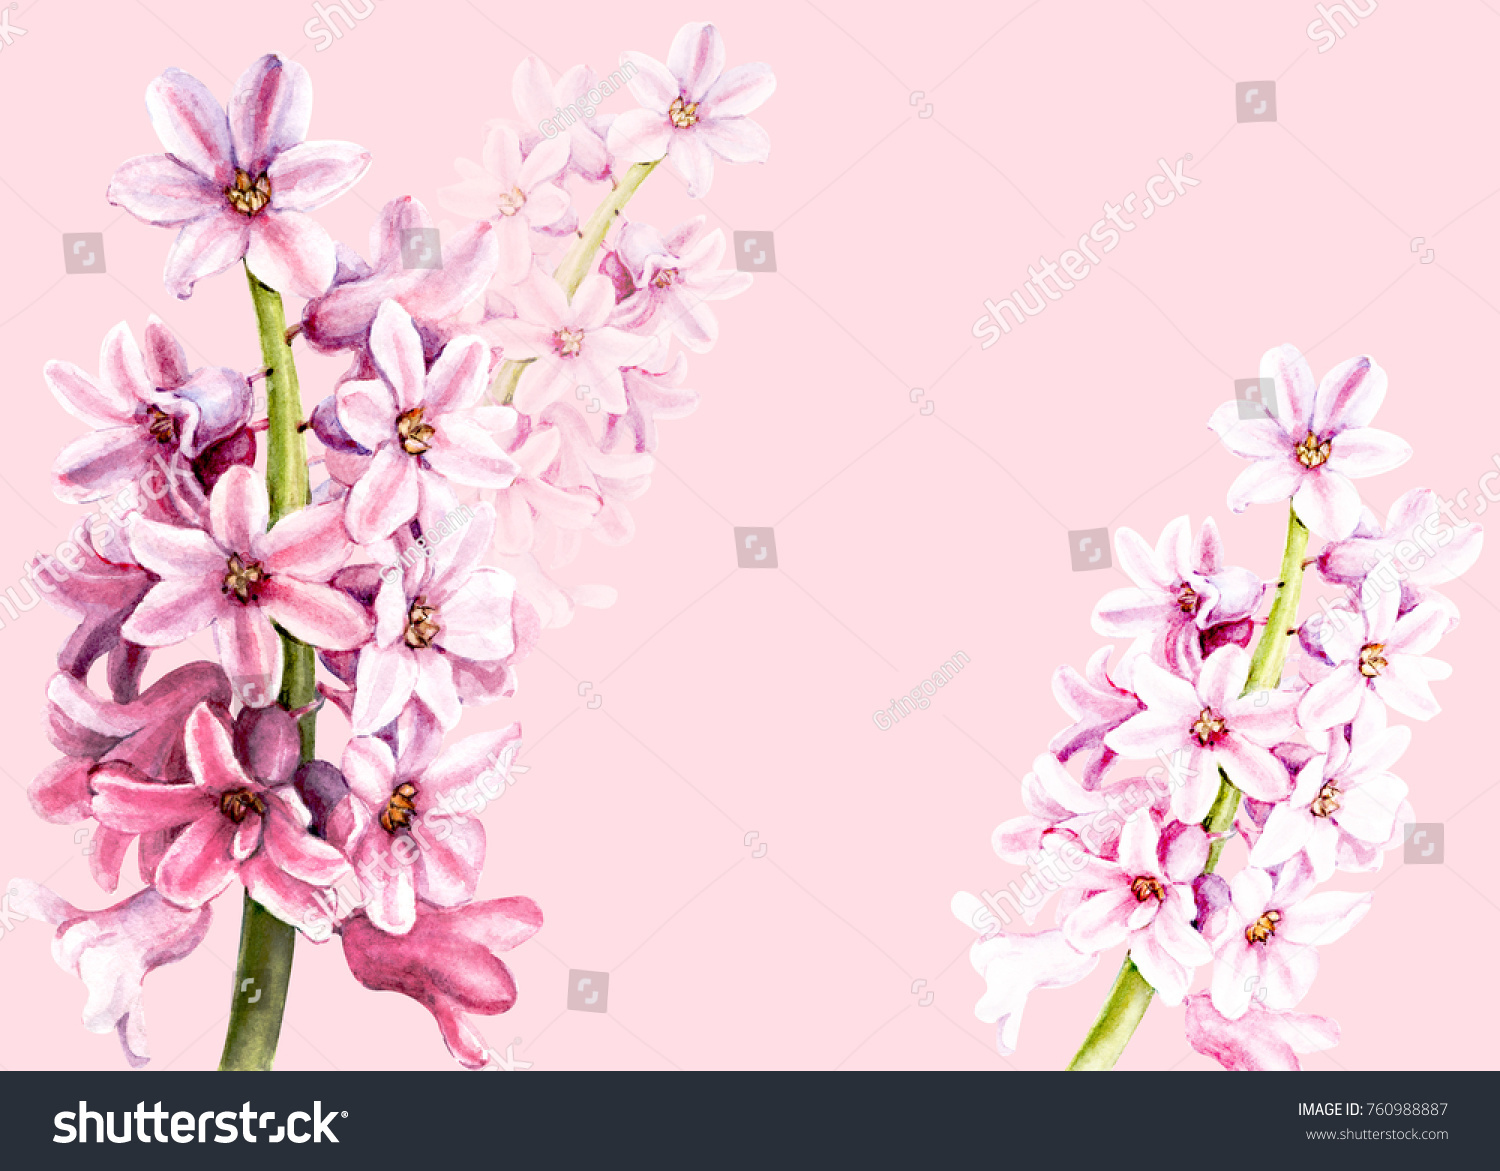 Spring Flowers Hyacinth Watercolor Illustration Hand Drawing Ez